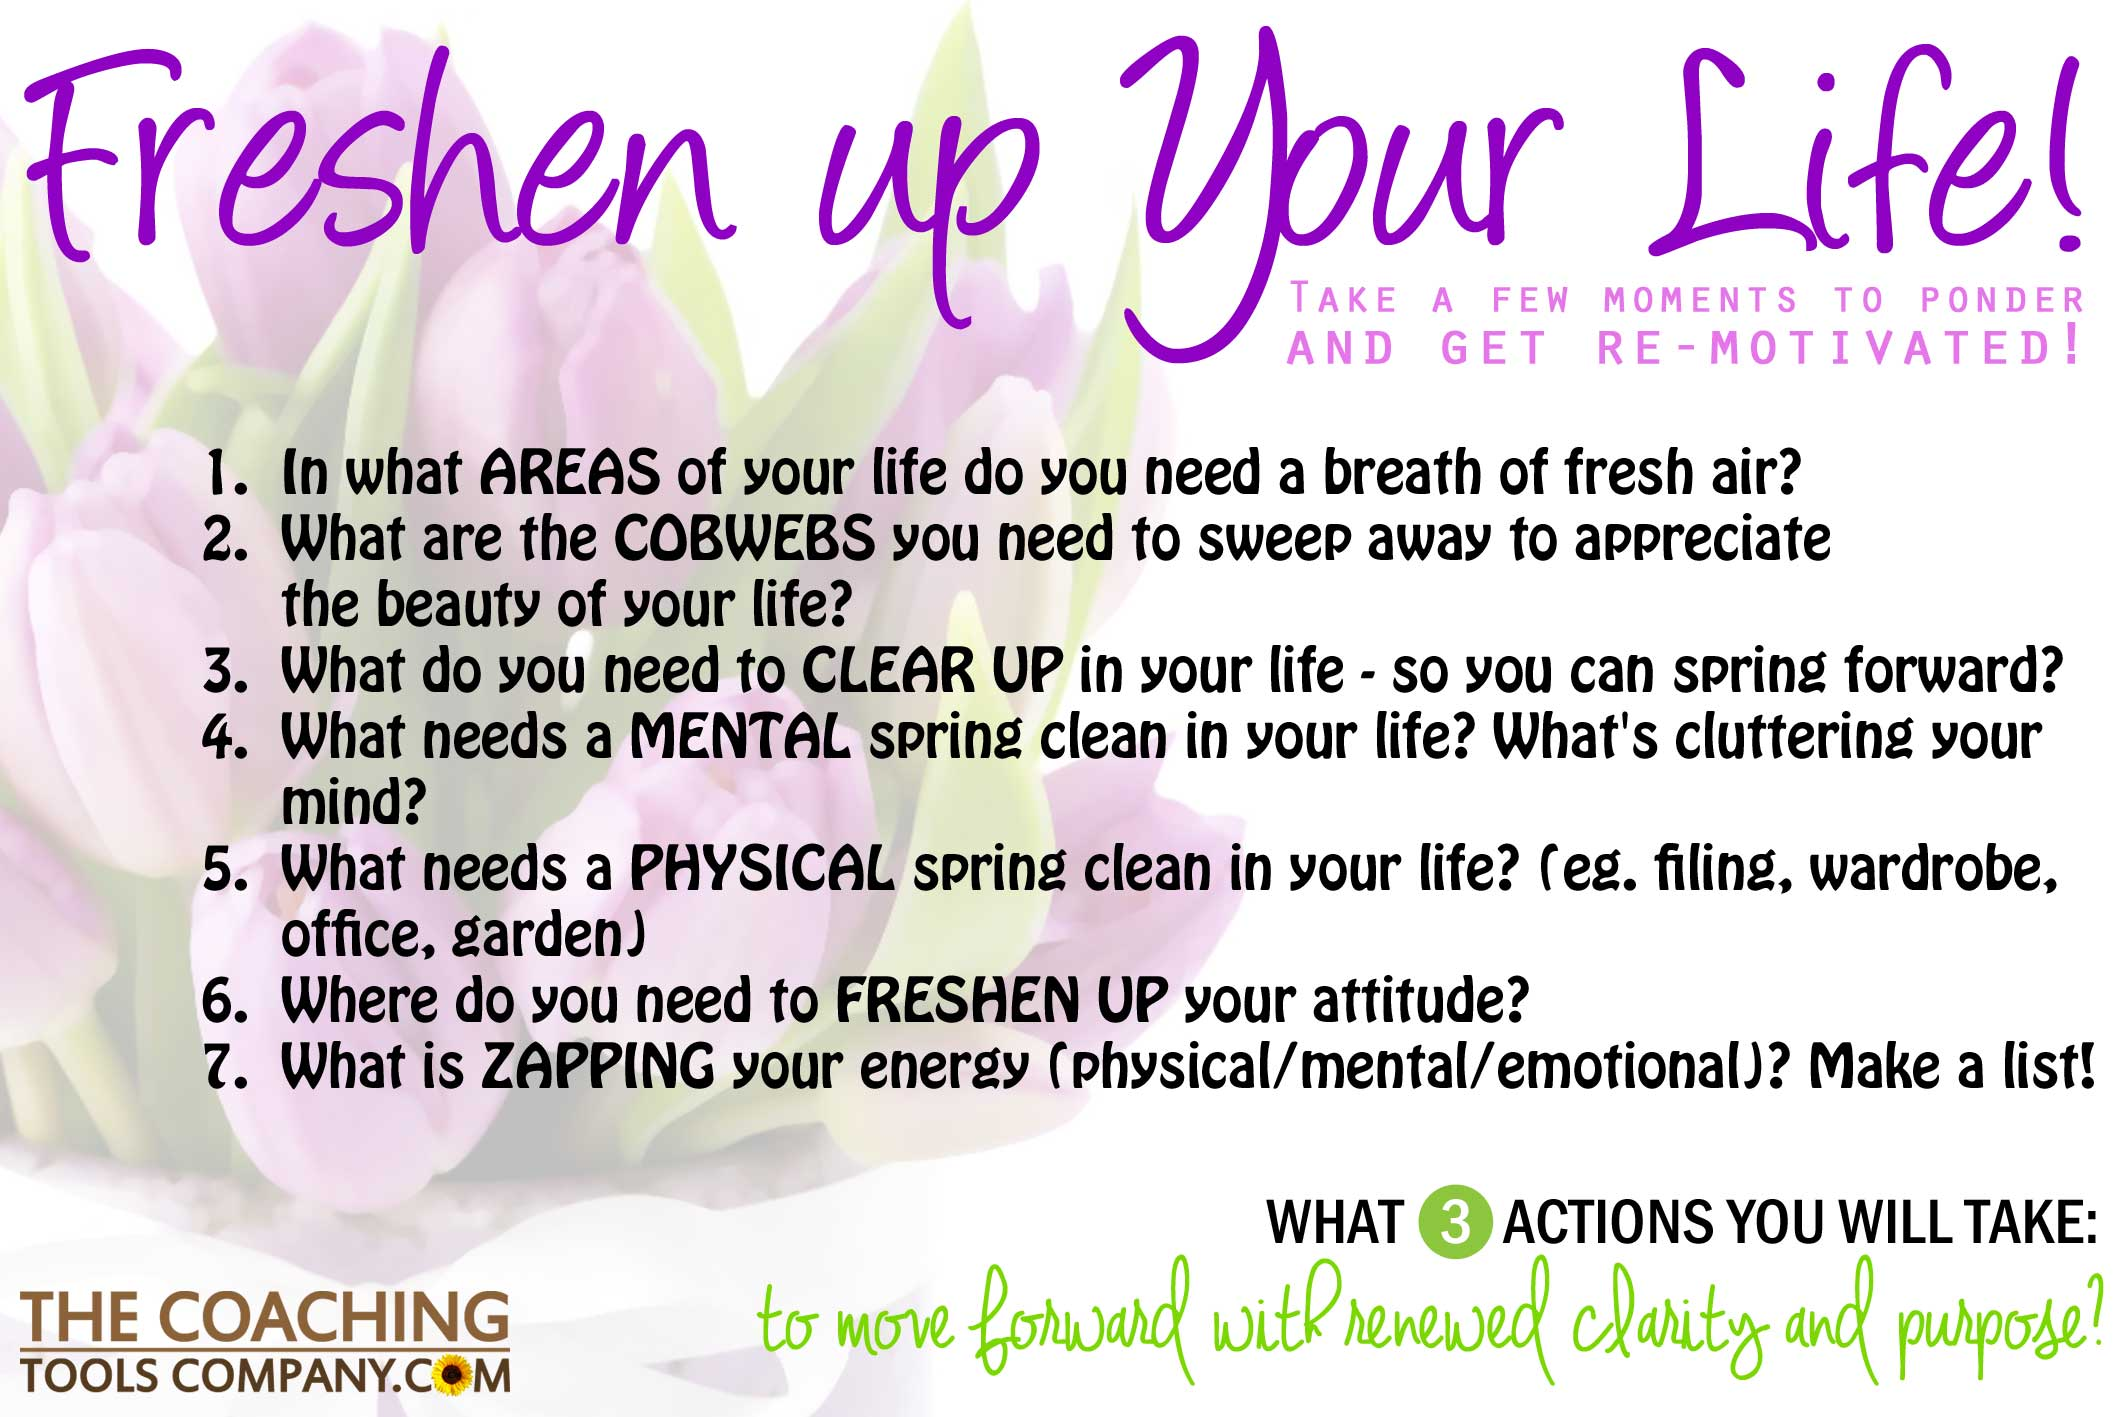 7 Questions To Get Re Motivated And Freshen Up Your Life